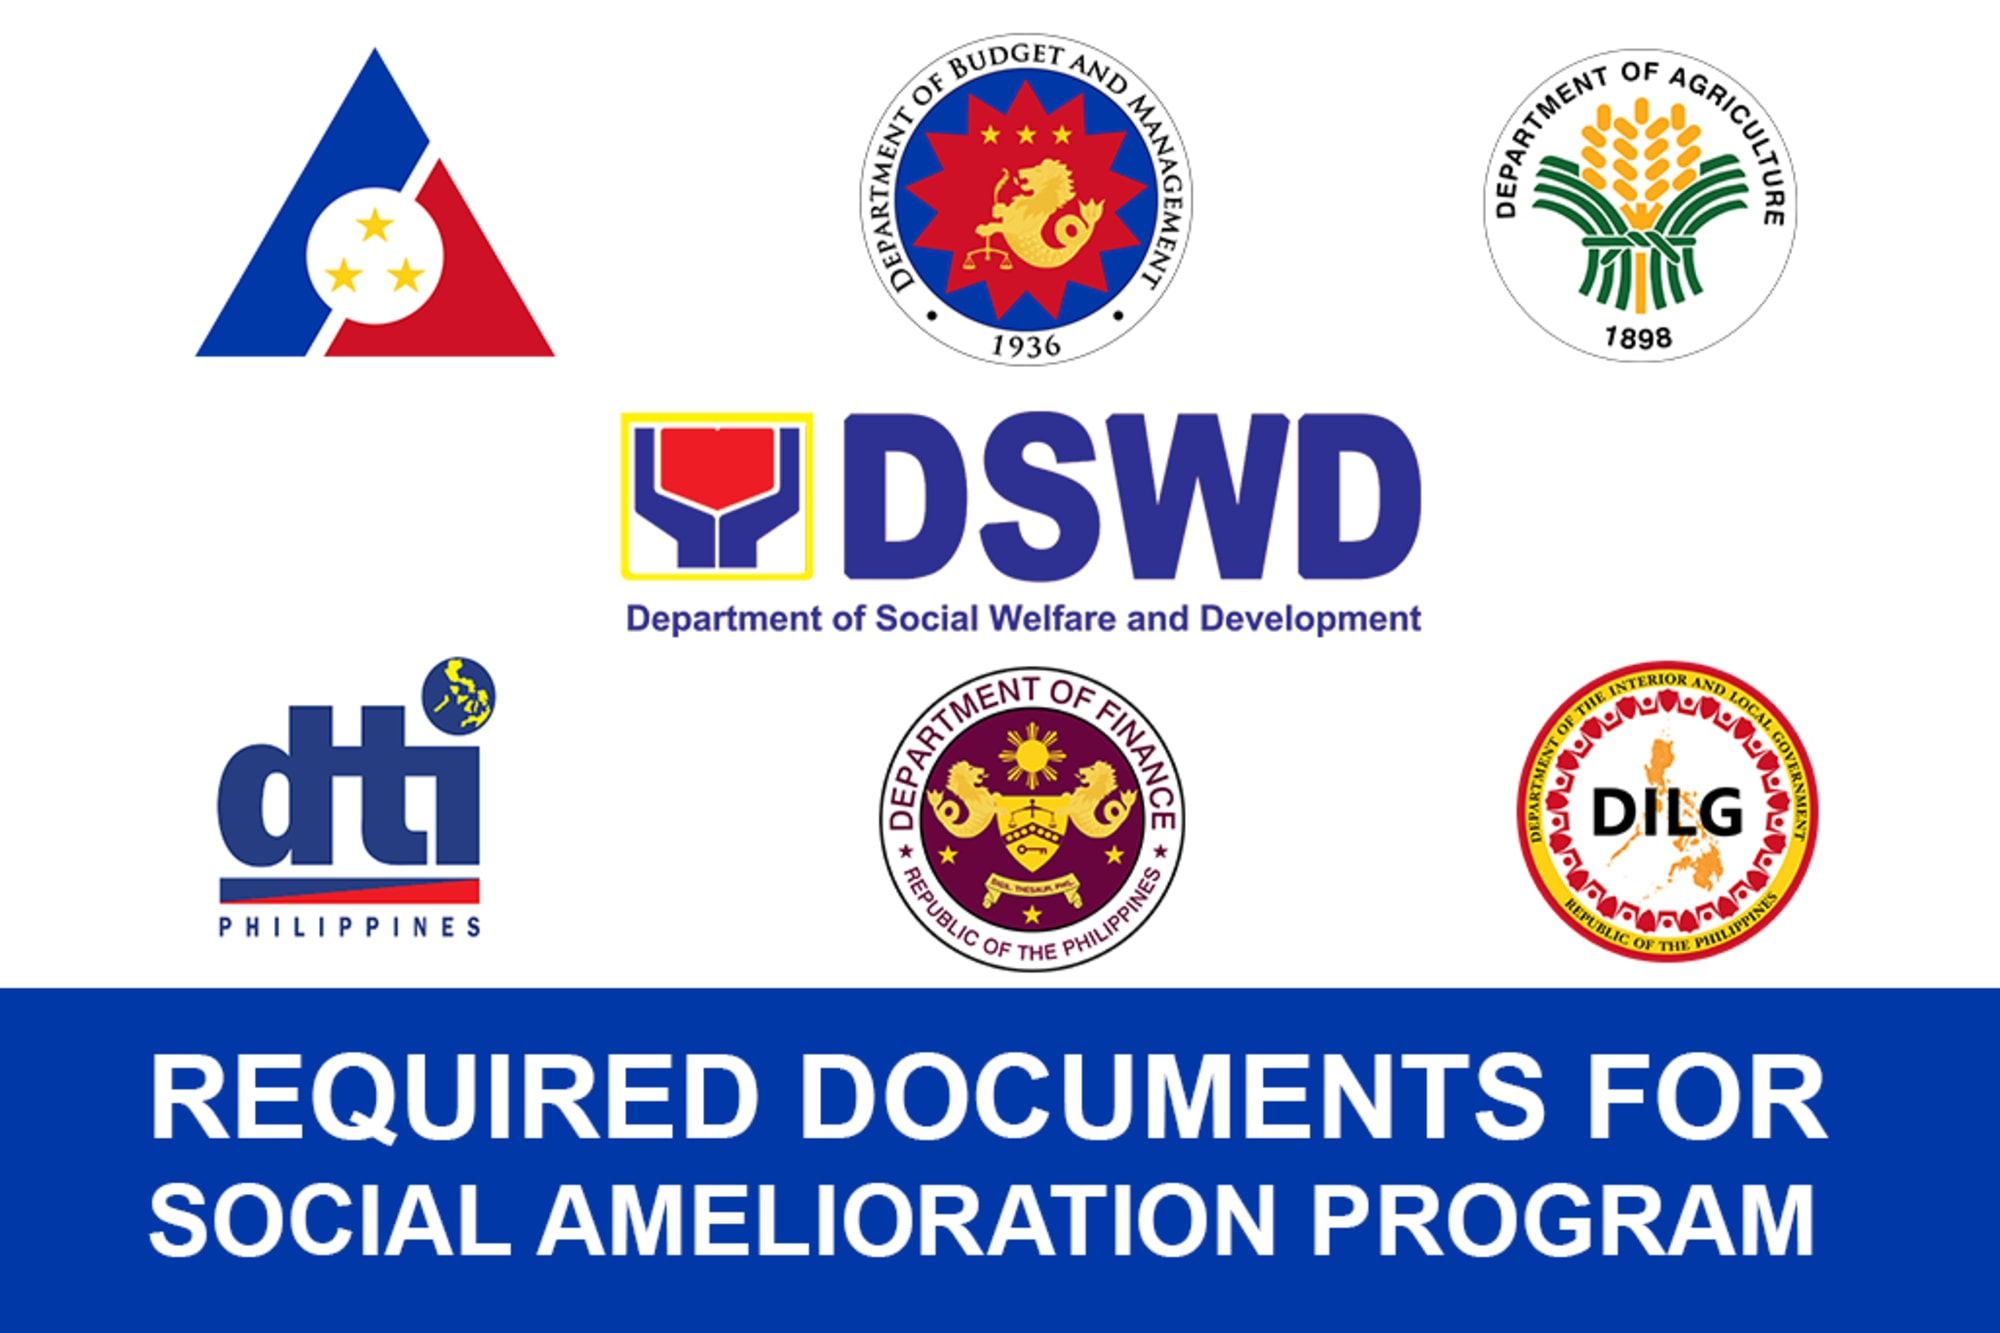 The required documents needed for Social Amelioration Program